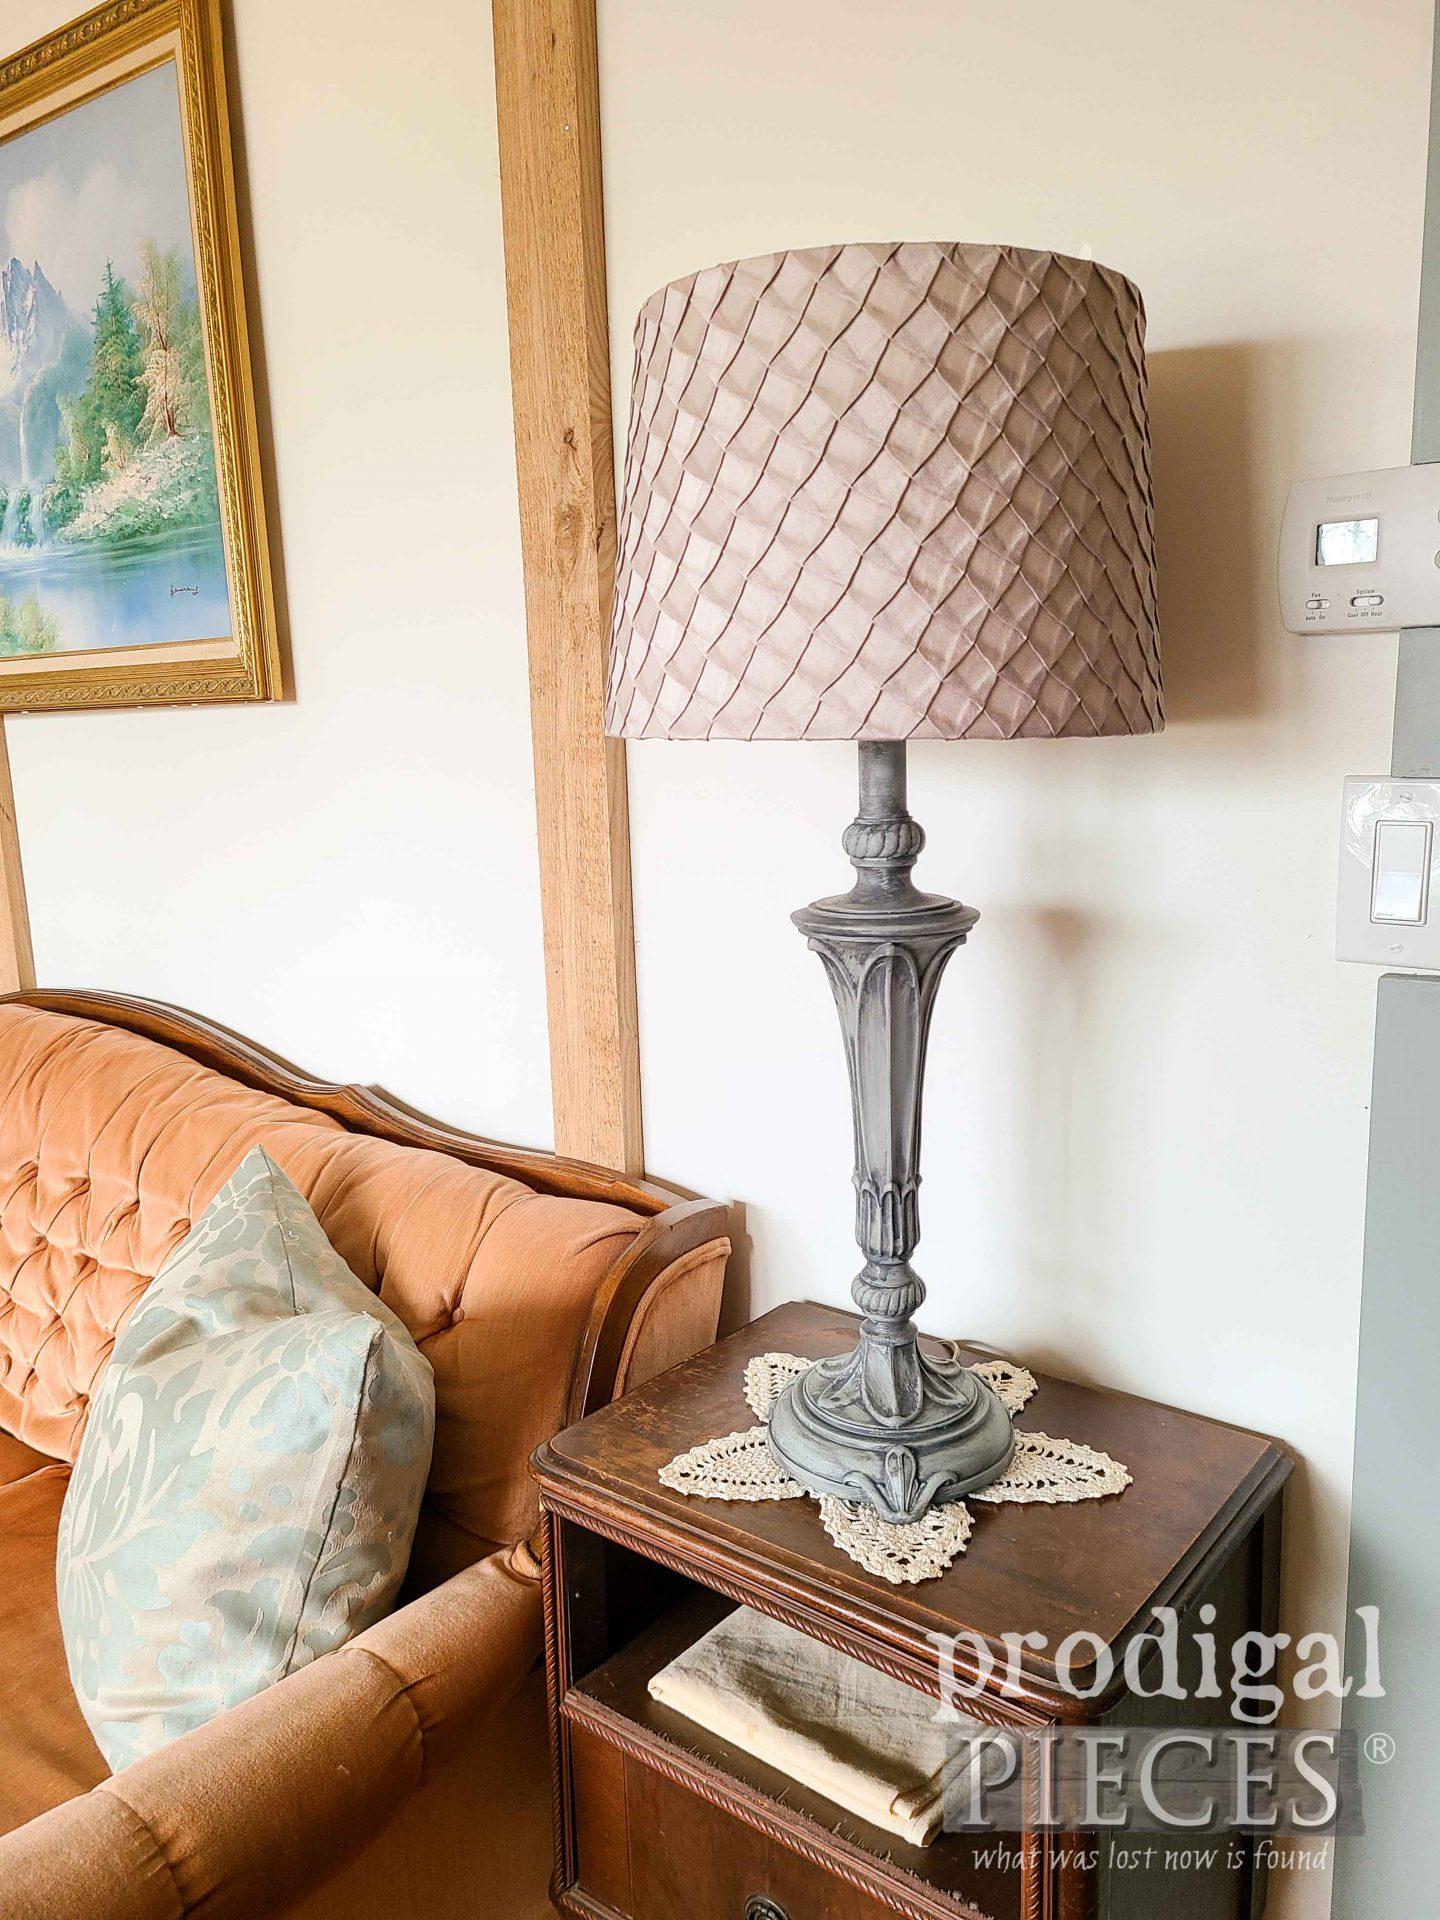 Beautiful Blue/Green Painted Table Lamps for Farmhouse Home Decor by Larissa of Prodigal Pieces | prodigalpieces.com #prodigalpieces #vintage #table #home #homedecor